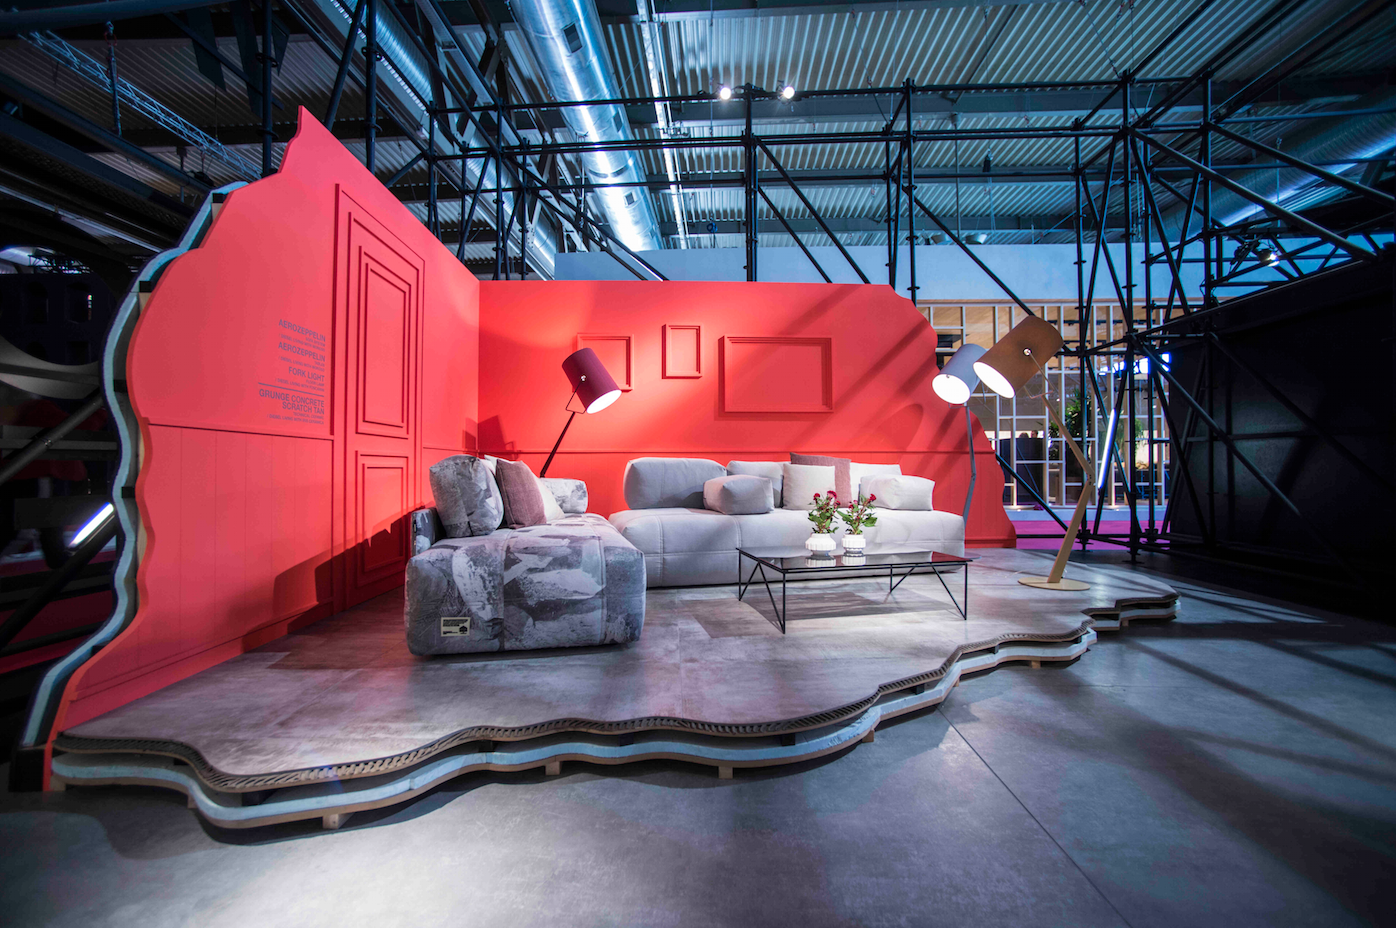 Diesel Living's booth at Salone del Mobile.